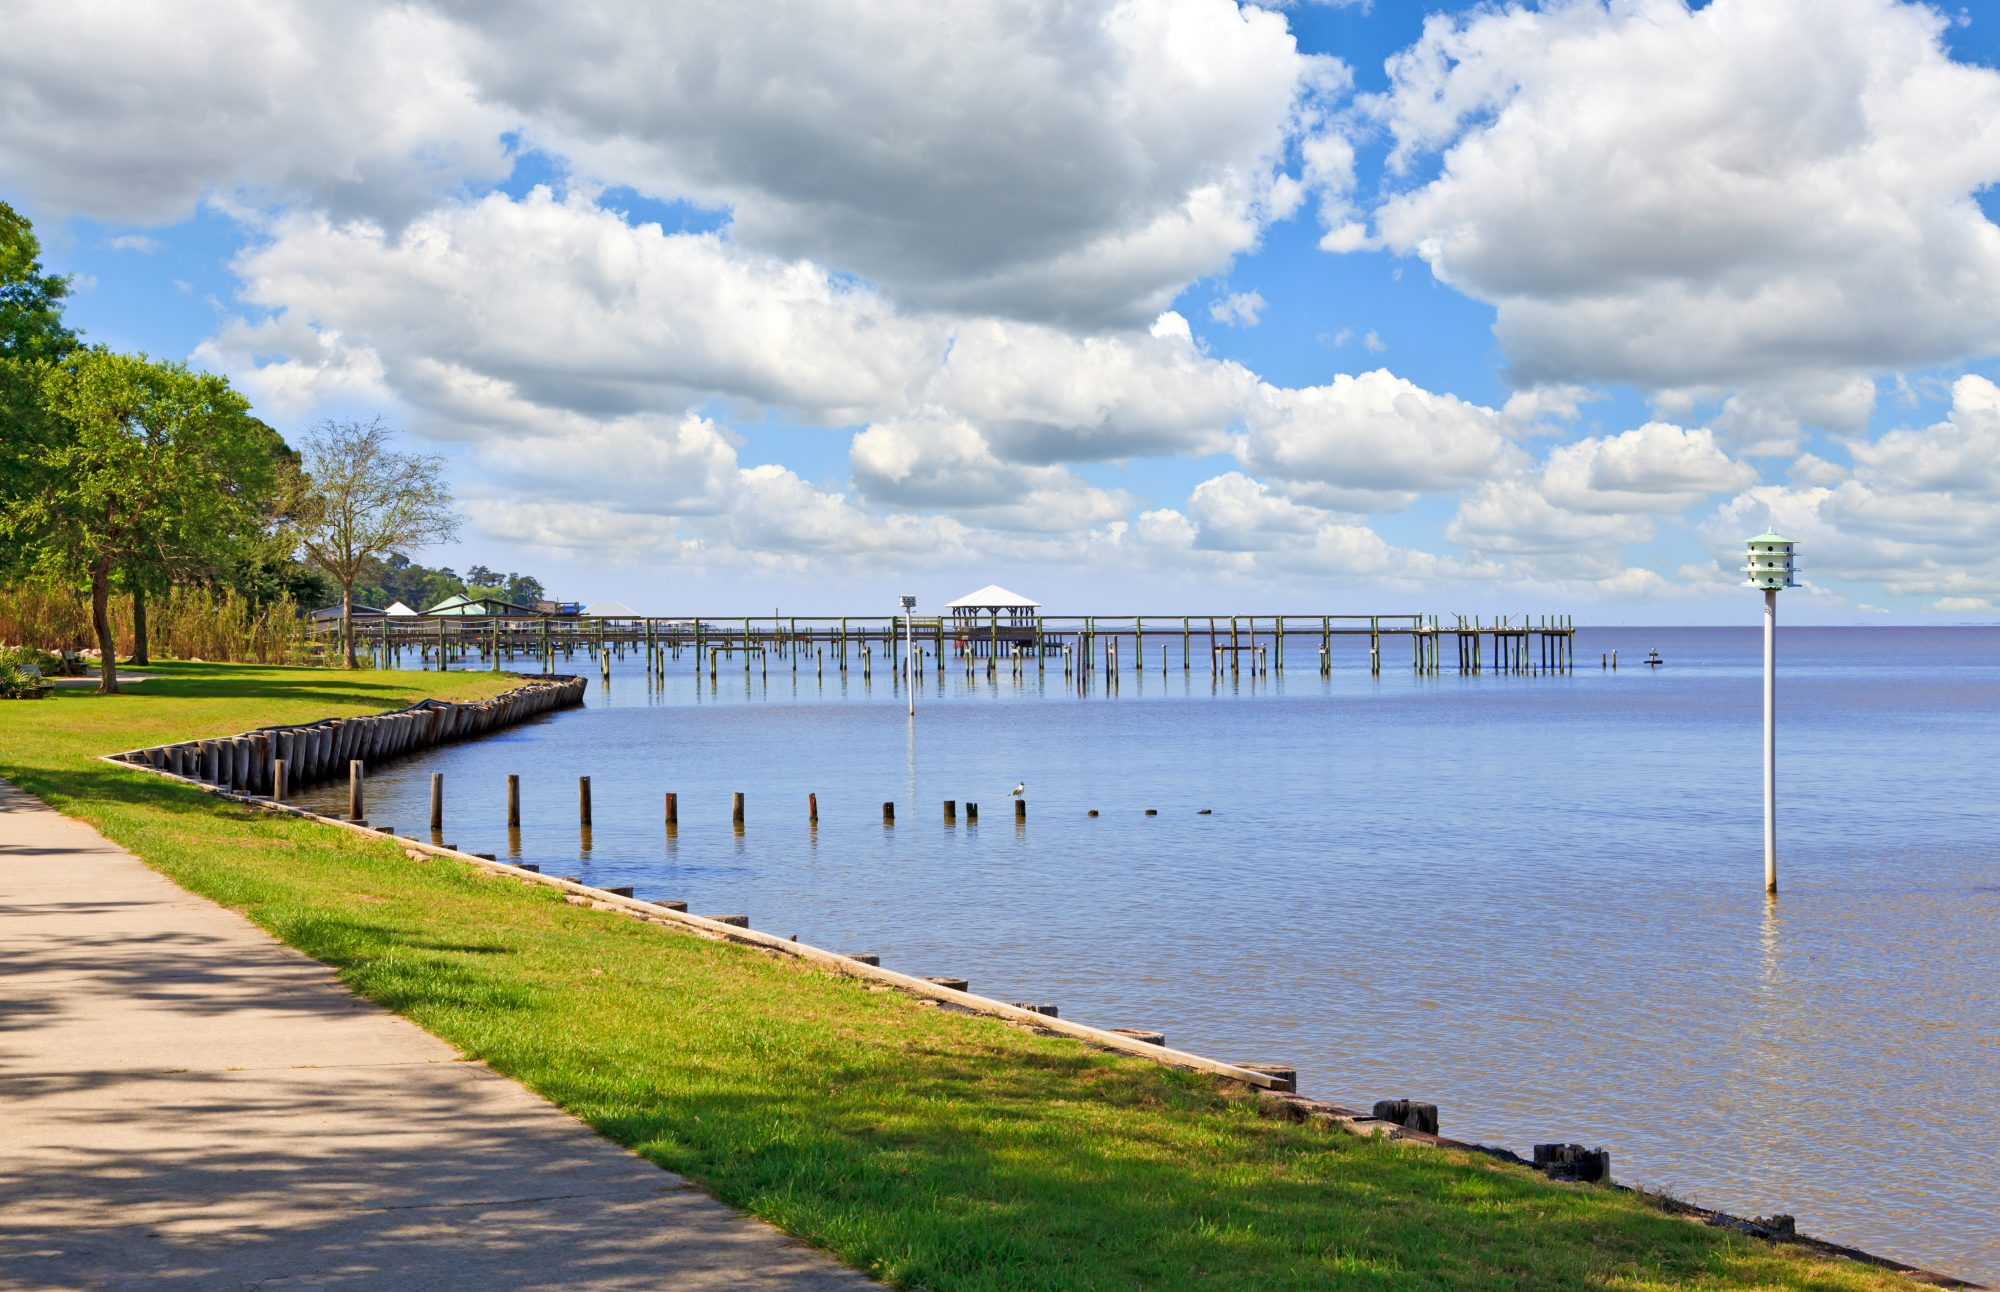 This gem on Mobile Bay along the shimmering Gulf of Mexico has a sweet little downtown complete with waterfront park, a pair of lovely beaches, and fishing pier. An added (and somewhat secret) charm: Point Clear just to the south, with a stunning bayside walking path that begins from the equally picturesque and gracious Grand Hotel Golf Resort and Spa.